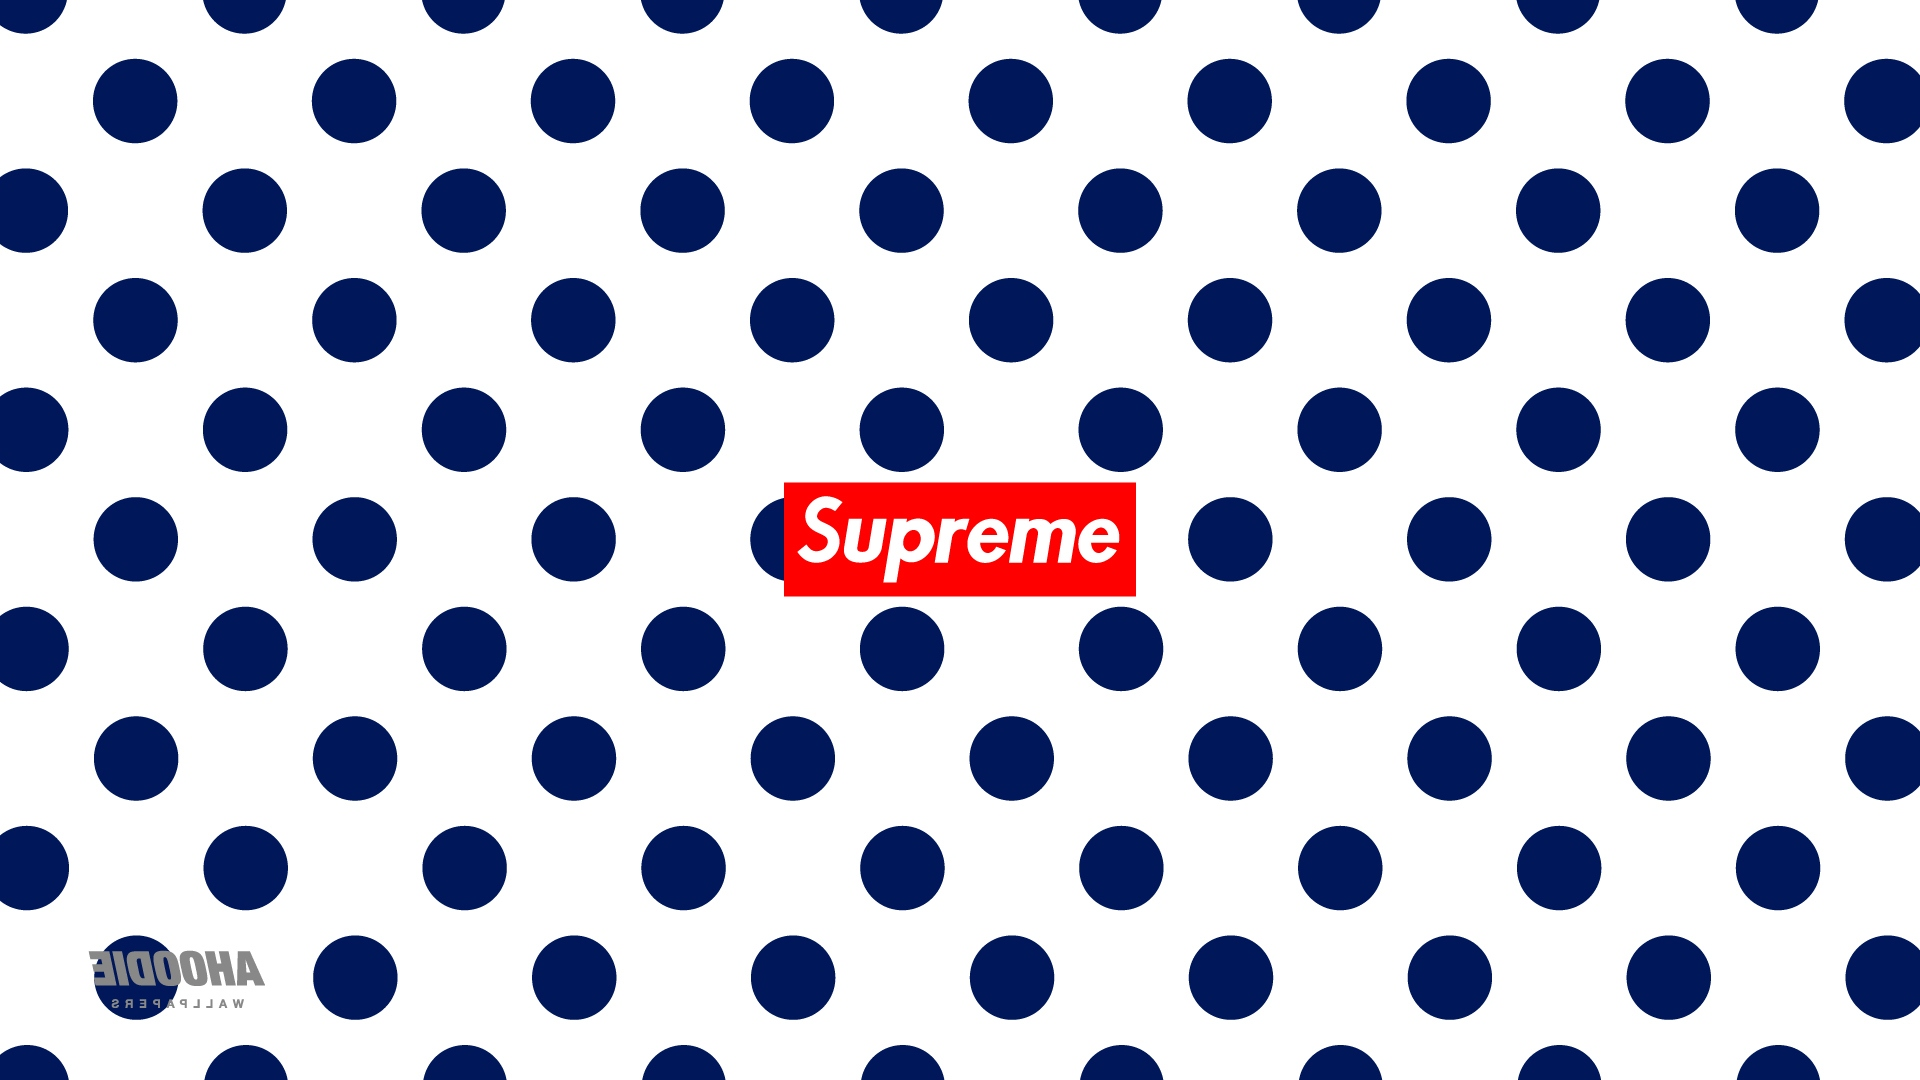 Hypebeast wallpaper full hd download for desktop pc 1920x1080